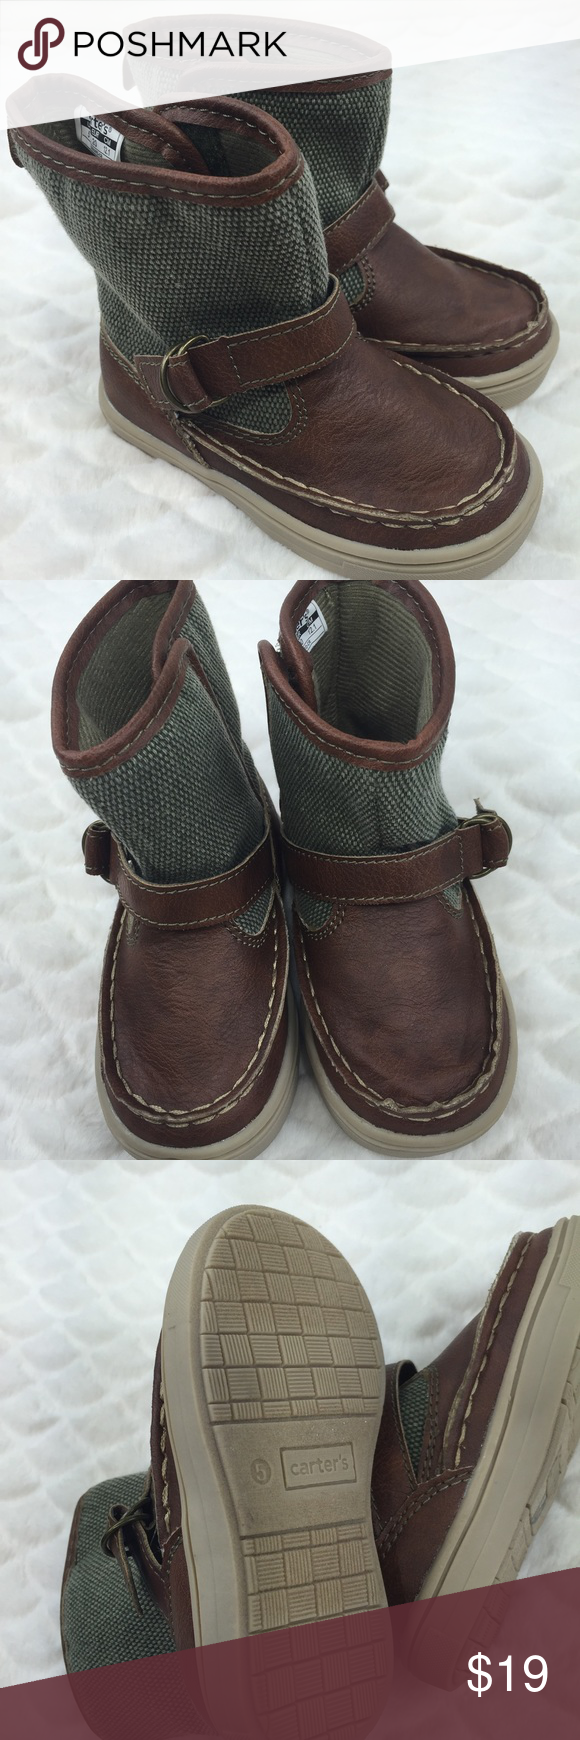 Dressy casual boots Always hard to find cute unique shoes for boys! New without tags never used! Carter's Shoes Boots